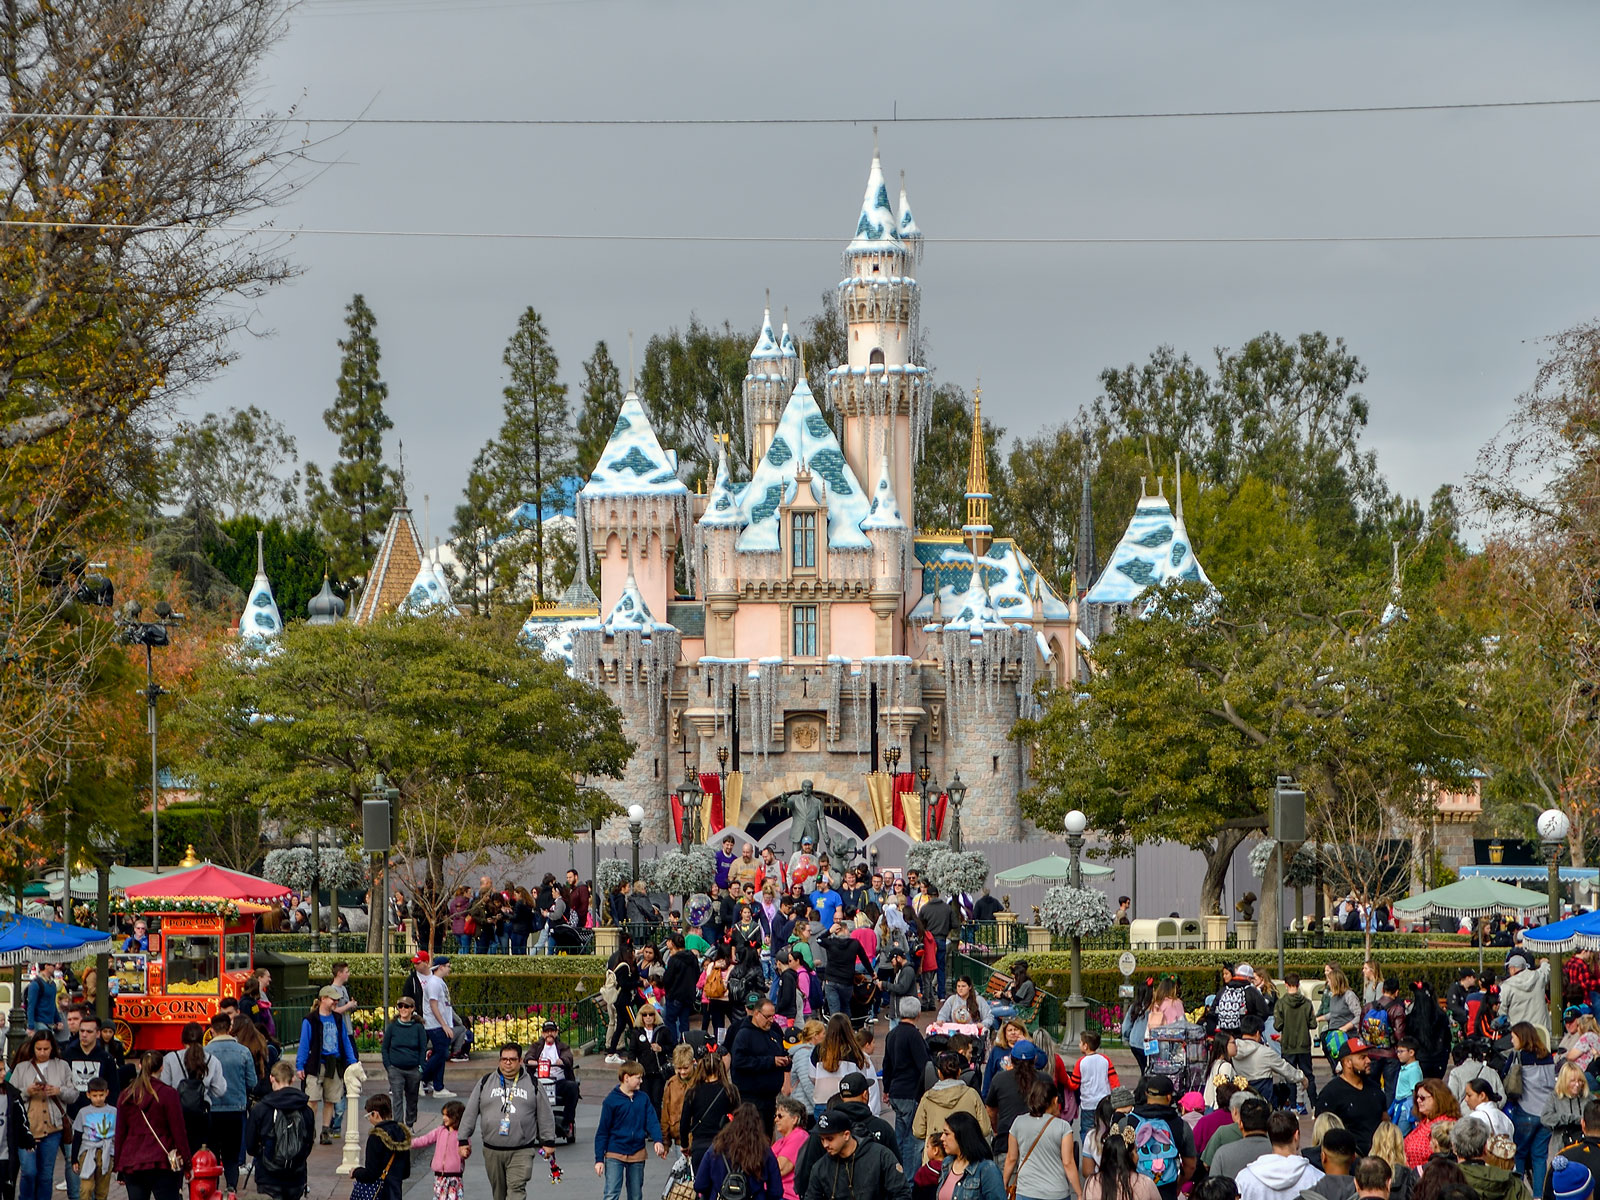 Disneyland Named 'America's Most Vegan-Friendly Amusement Park' by PETA